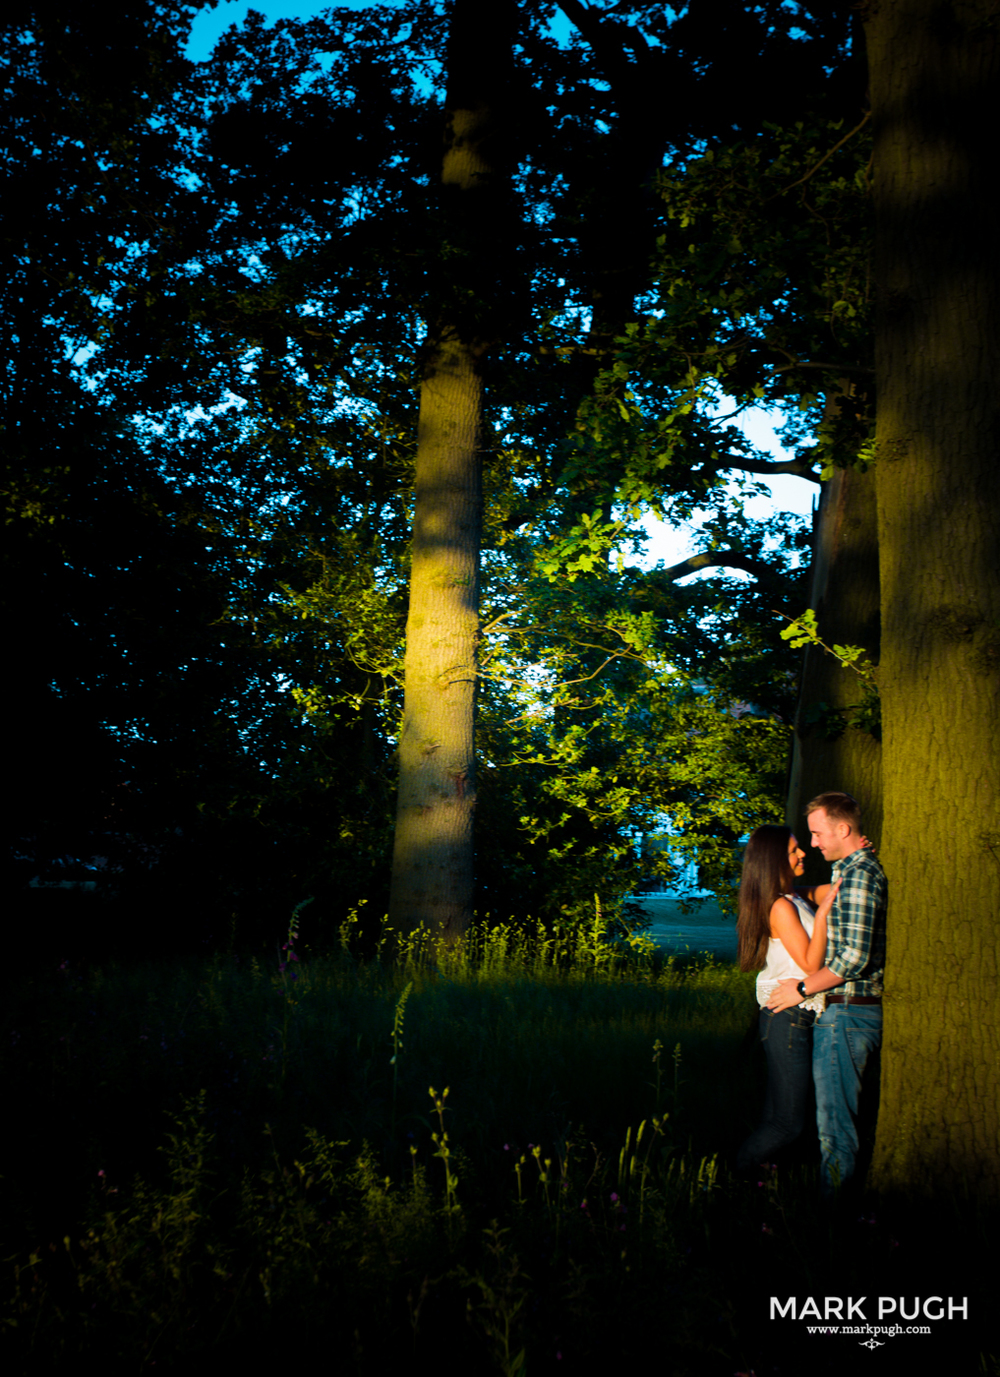 047  - Jacqueline and David - preWED Photography session at Kelham House Country Manor Hotel by Mark Pugh www.markpugh.com -2.JPG